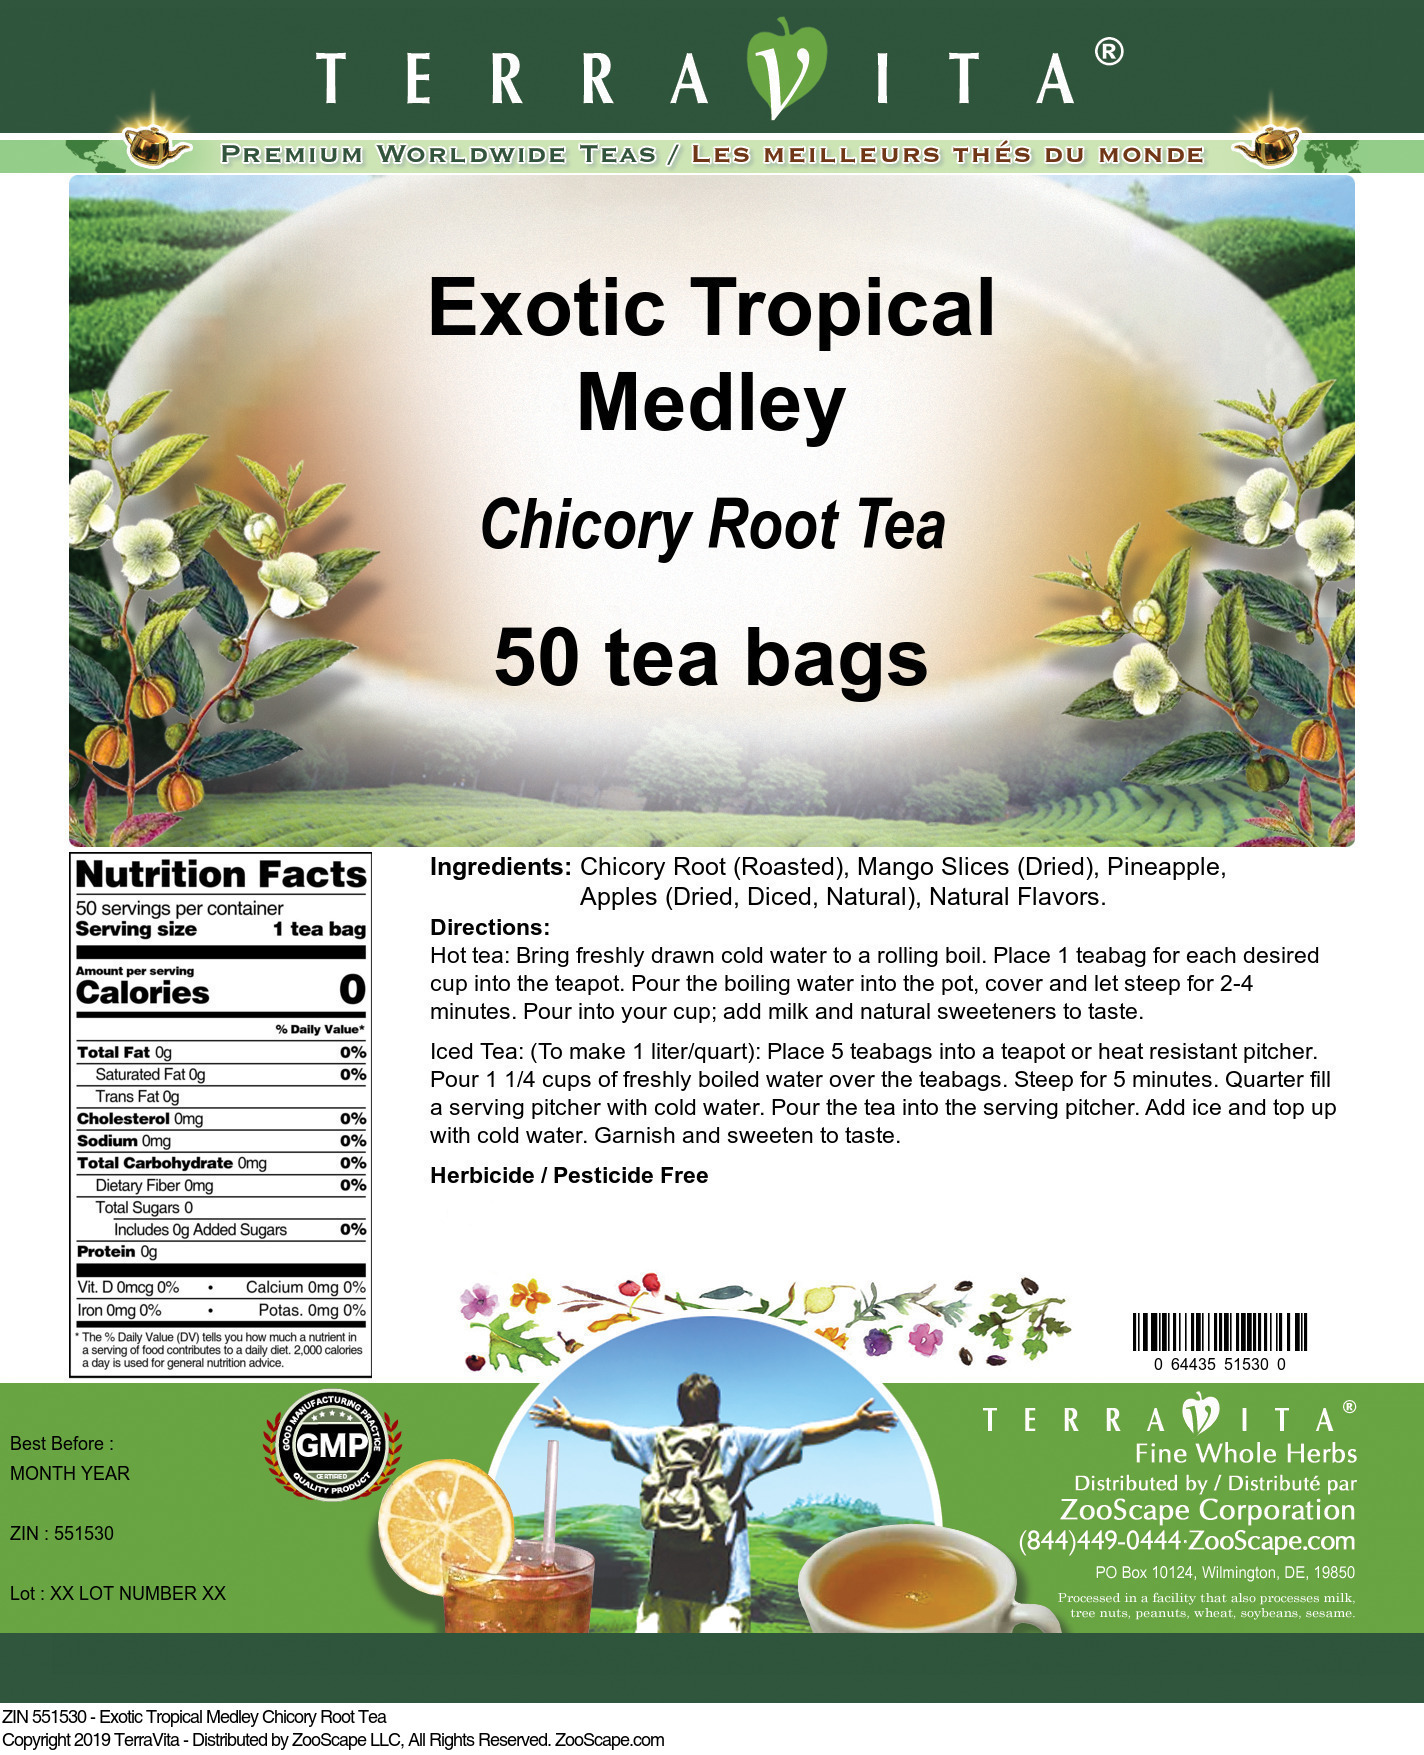 Exotic Tropical Medley Chicory Root Tea